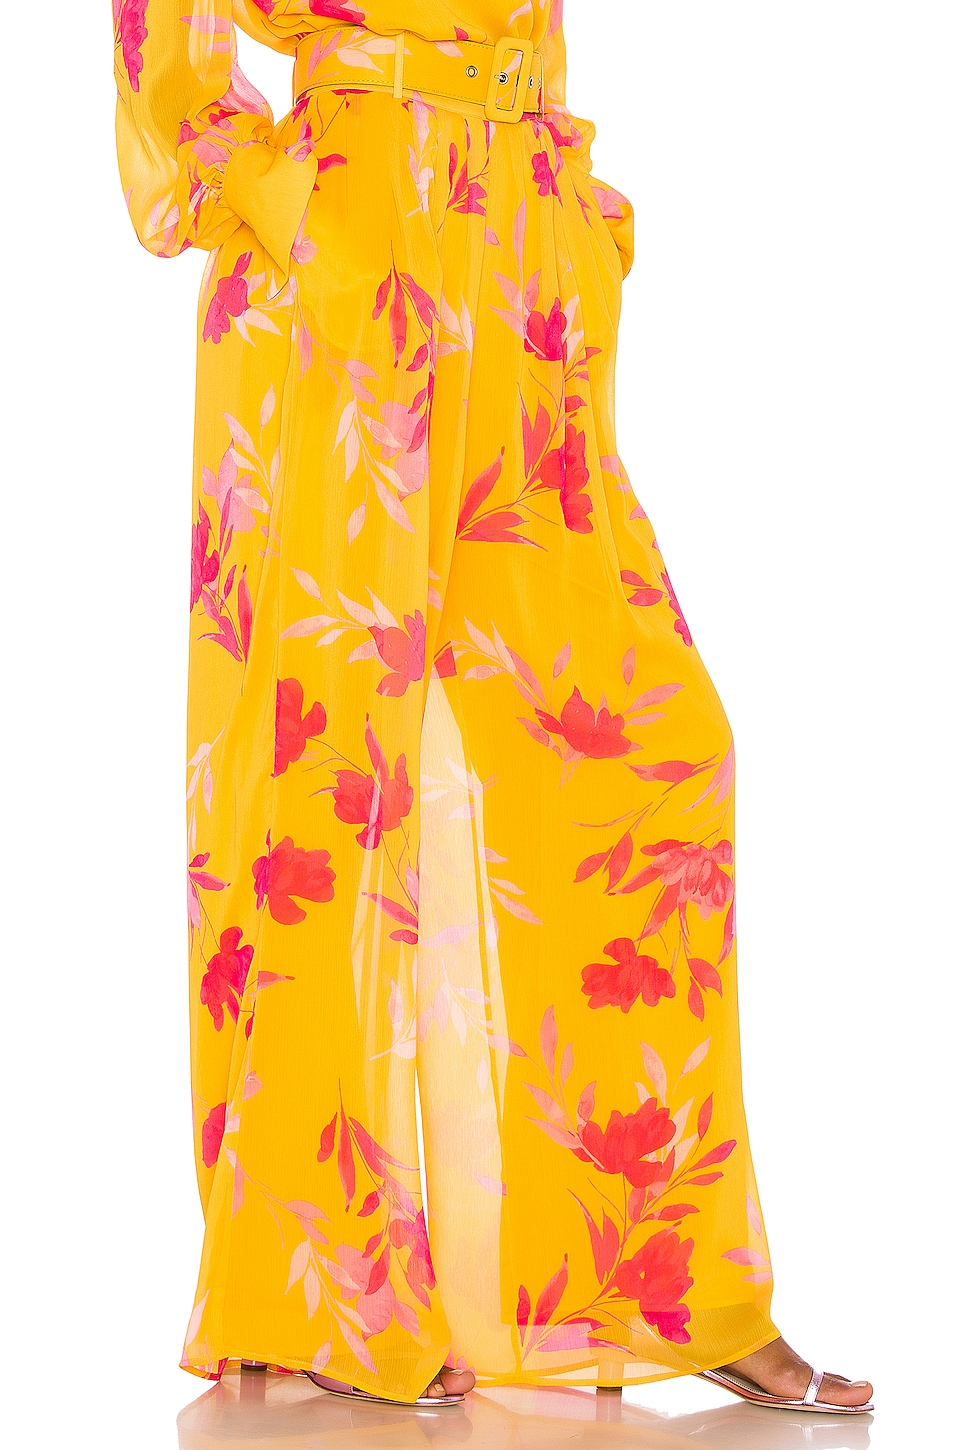 Song of Style Karina Pant in Yellow Floral